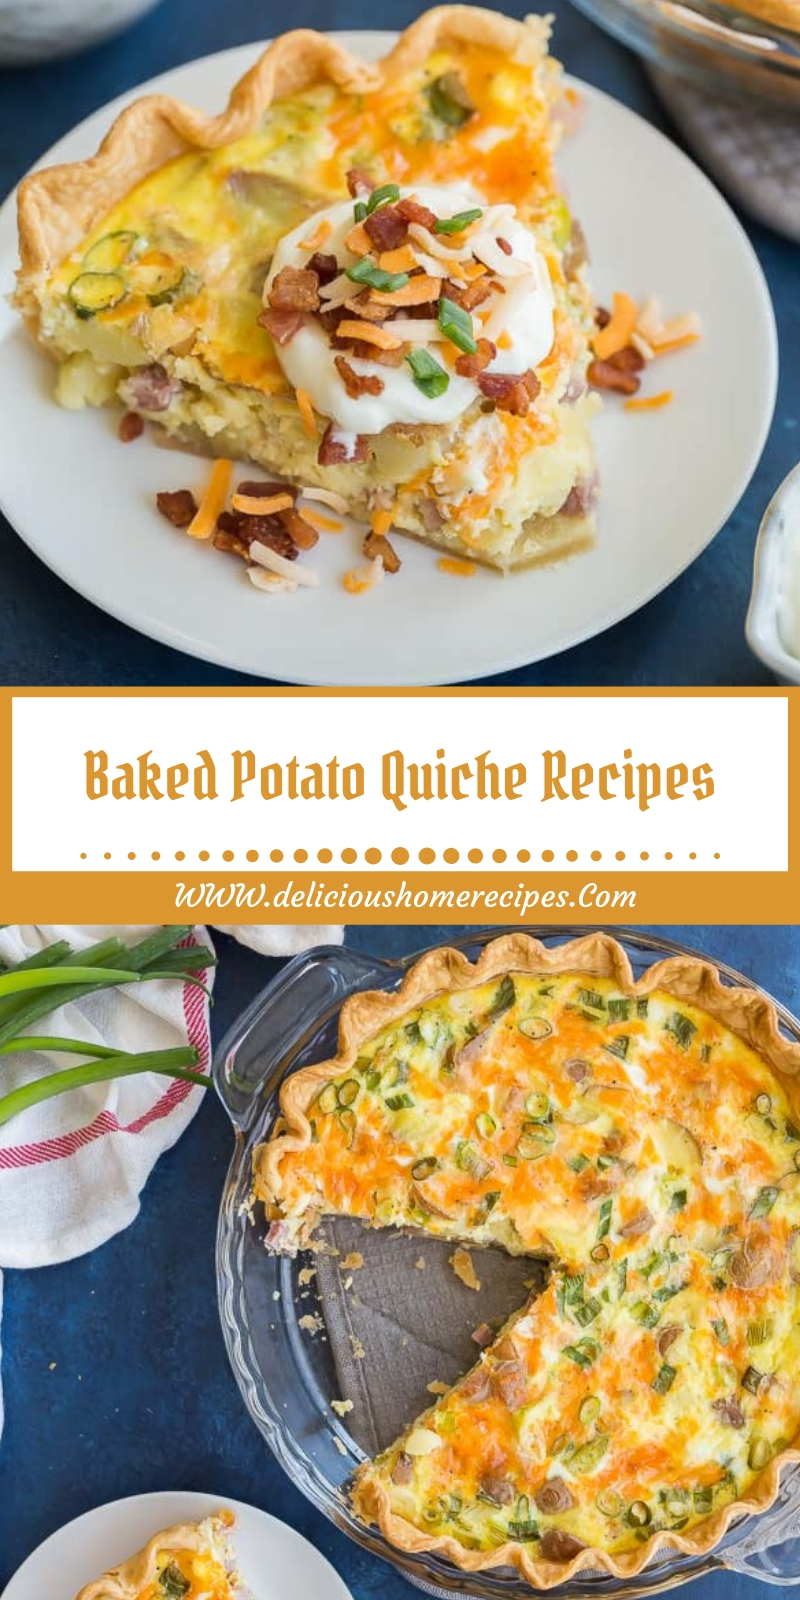 Baked Potato Quiche Recipes